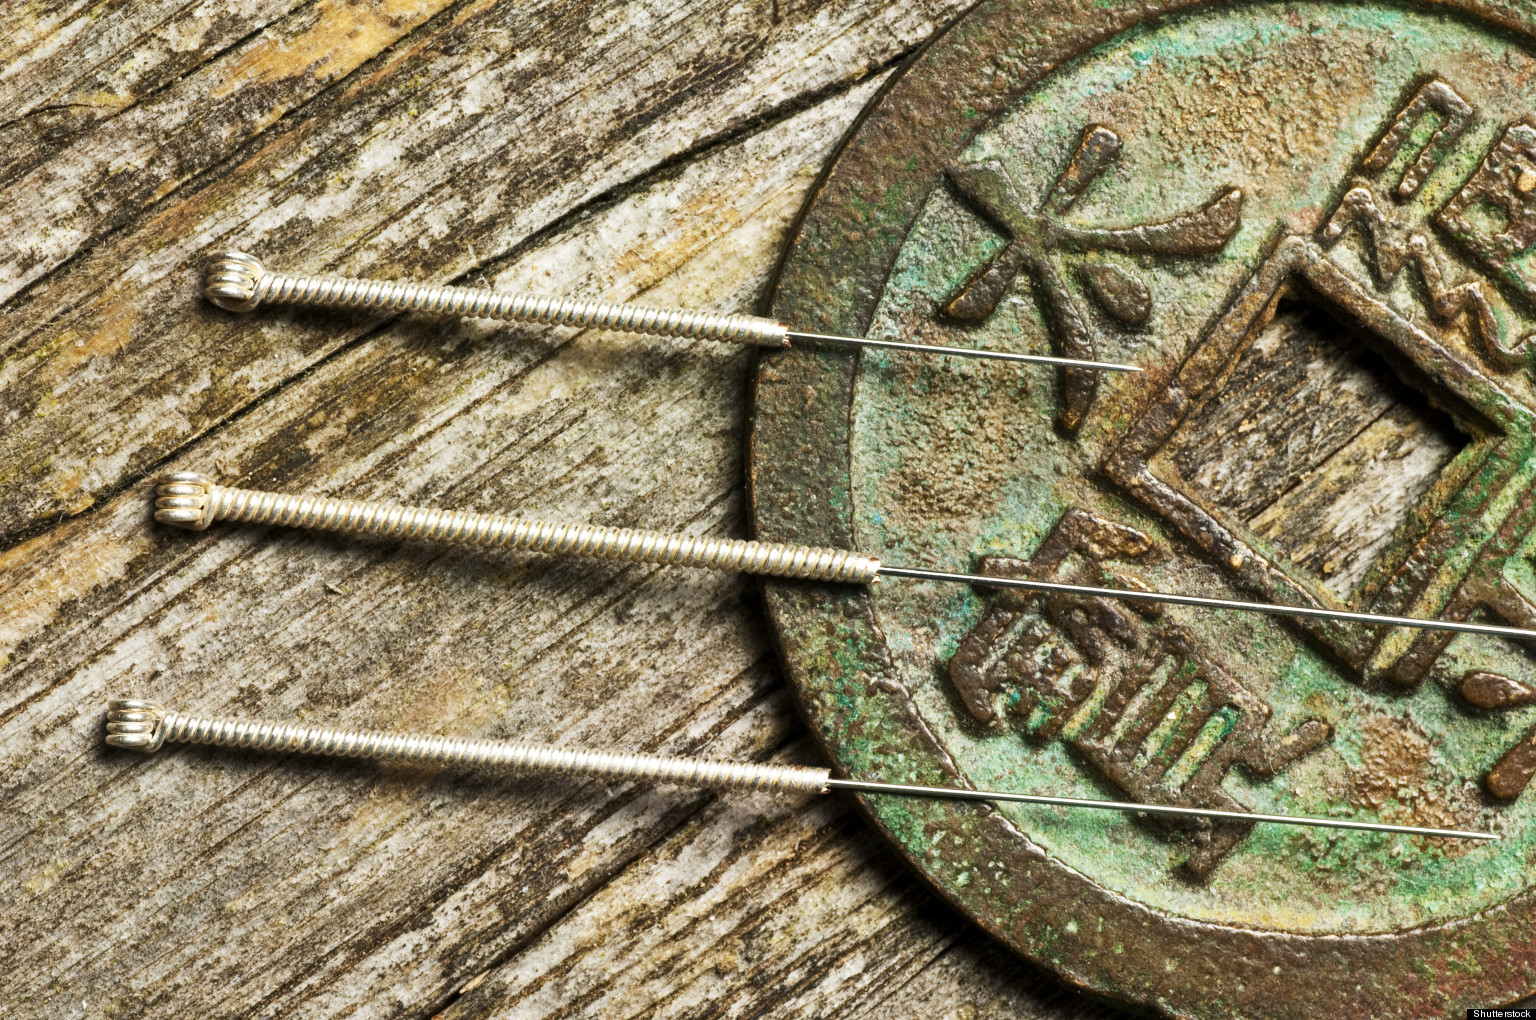 Good news, acupuncture fans: It really does help relieve stress. And now, a new study is giving a closer look at why. The new study explores the biological mechanisms involved in acupuncture's stress-relieving abilities, something science has yet...